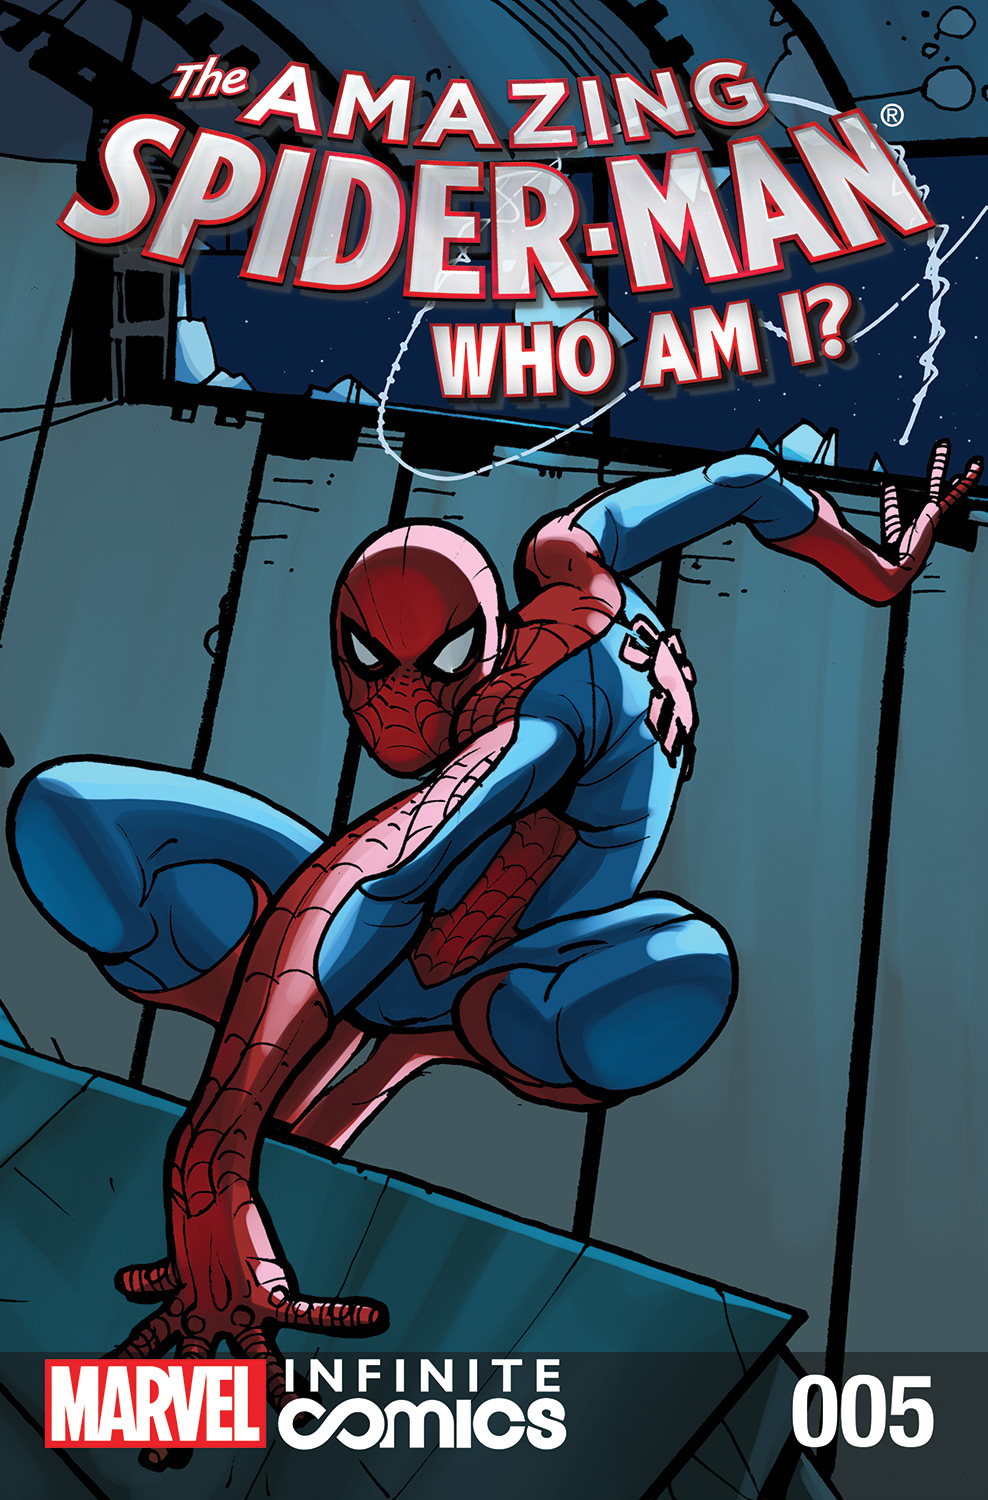 Amazing Spider-Man: Who Am I? Infinite Digital Comic (2014) #5